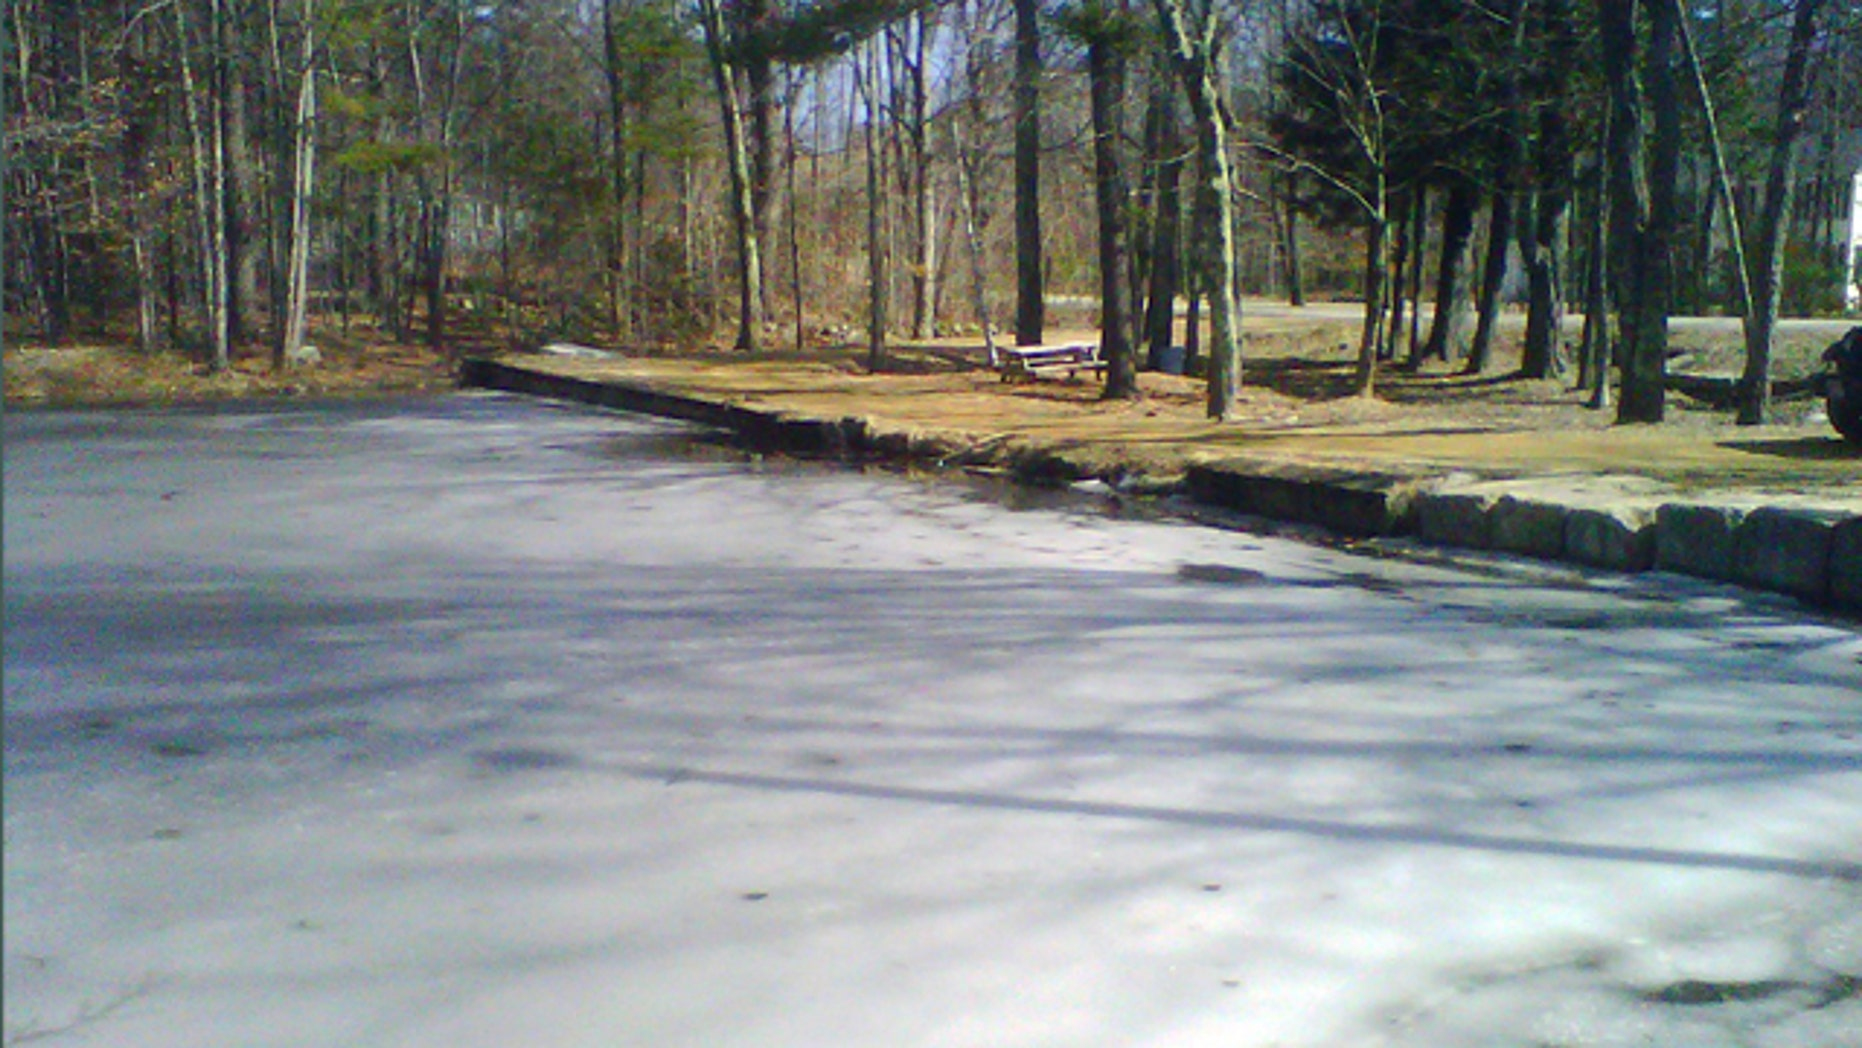 March 12, 2012: Ice partially covers the surface of Jew Pond in Mont Vernon, N.H. Residents can vote at a town meeting Tuesday whether to petition to officially change the name, which appears on a 1968 map but not on any town signs. Some say the name is inappropriate and disrespectful. Others says it was never meant to be offensive and is part of the towns history.